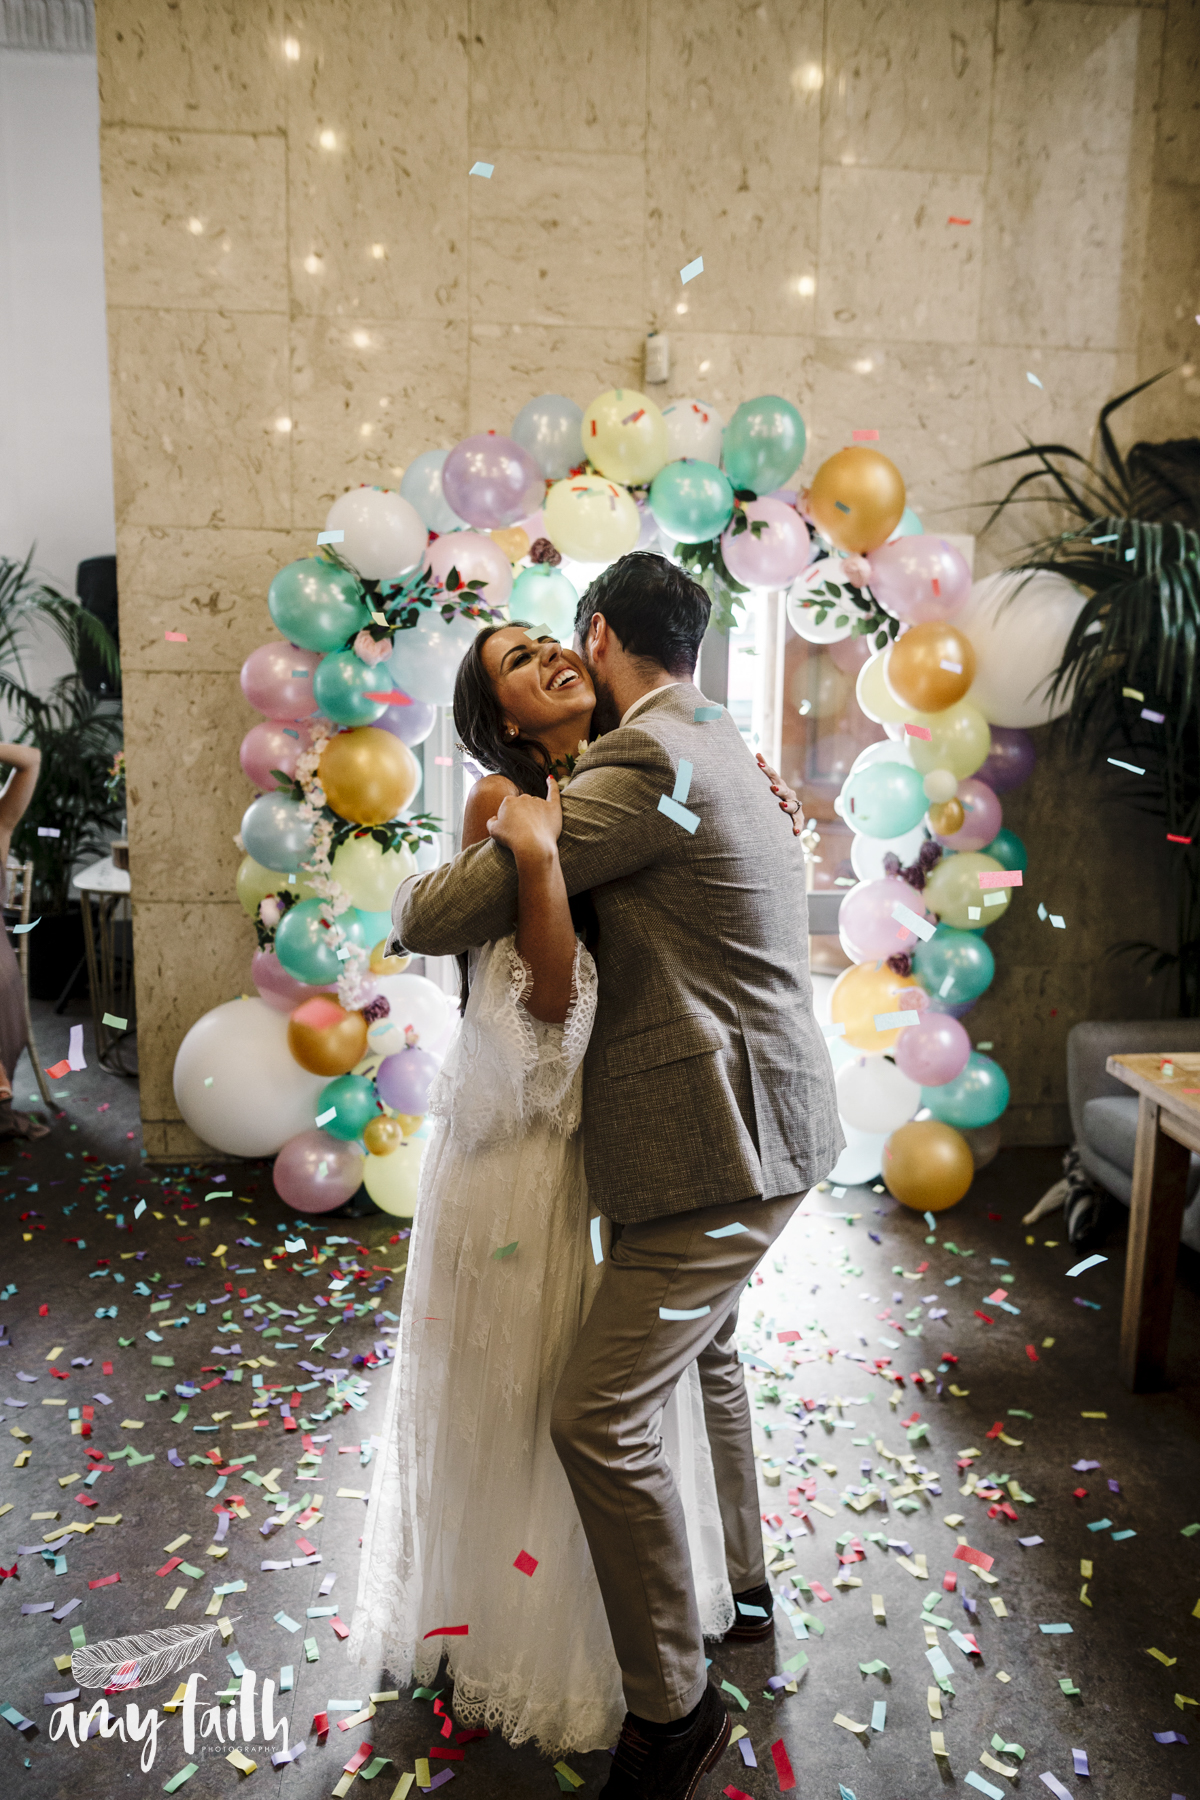 A bride and groom with confetti and balloons.